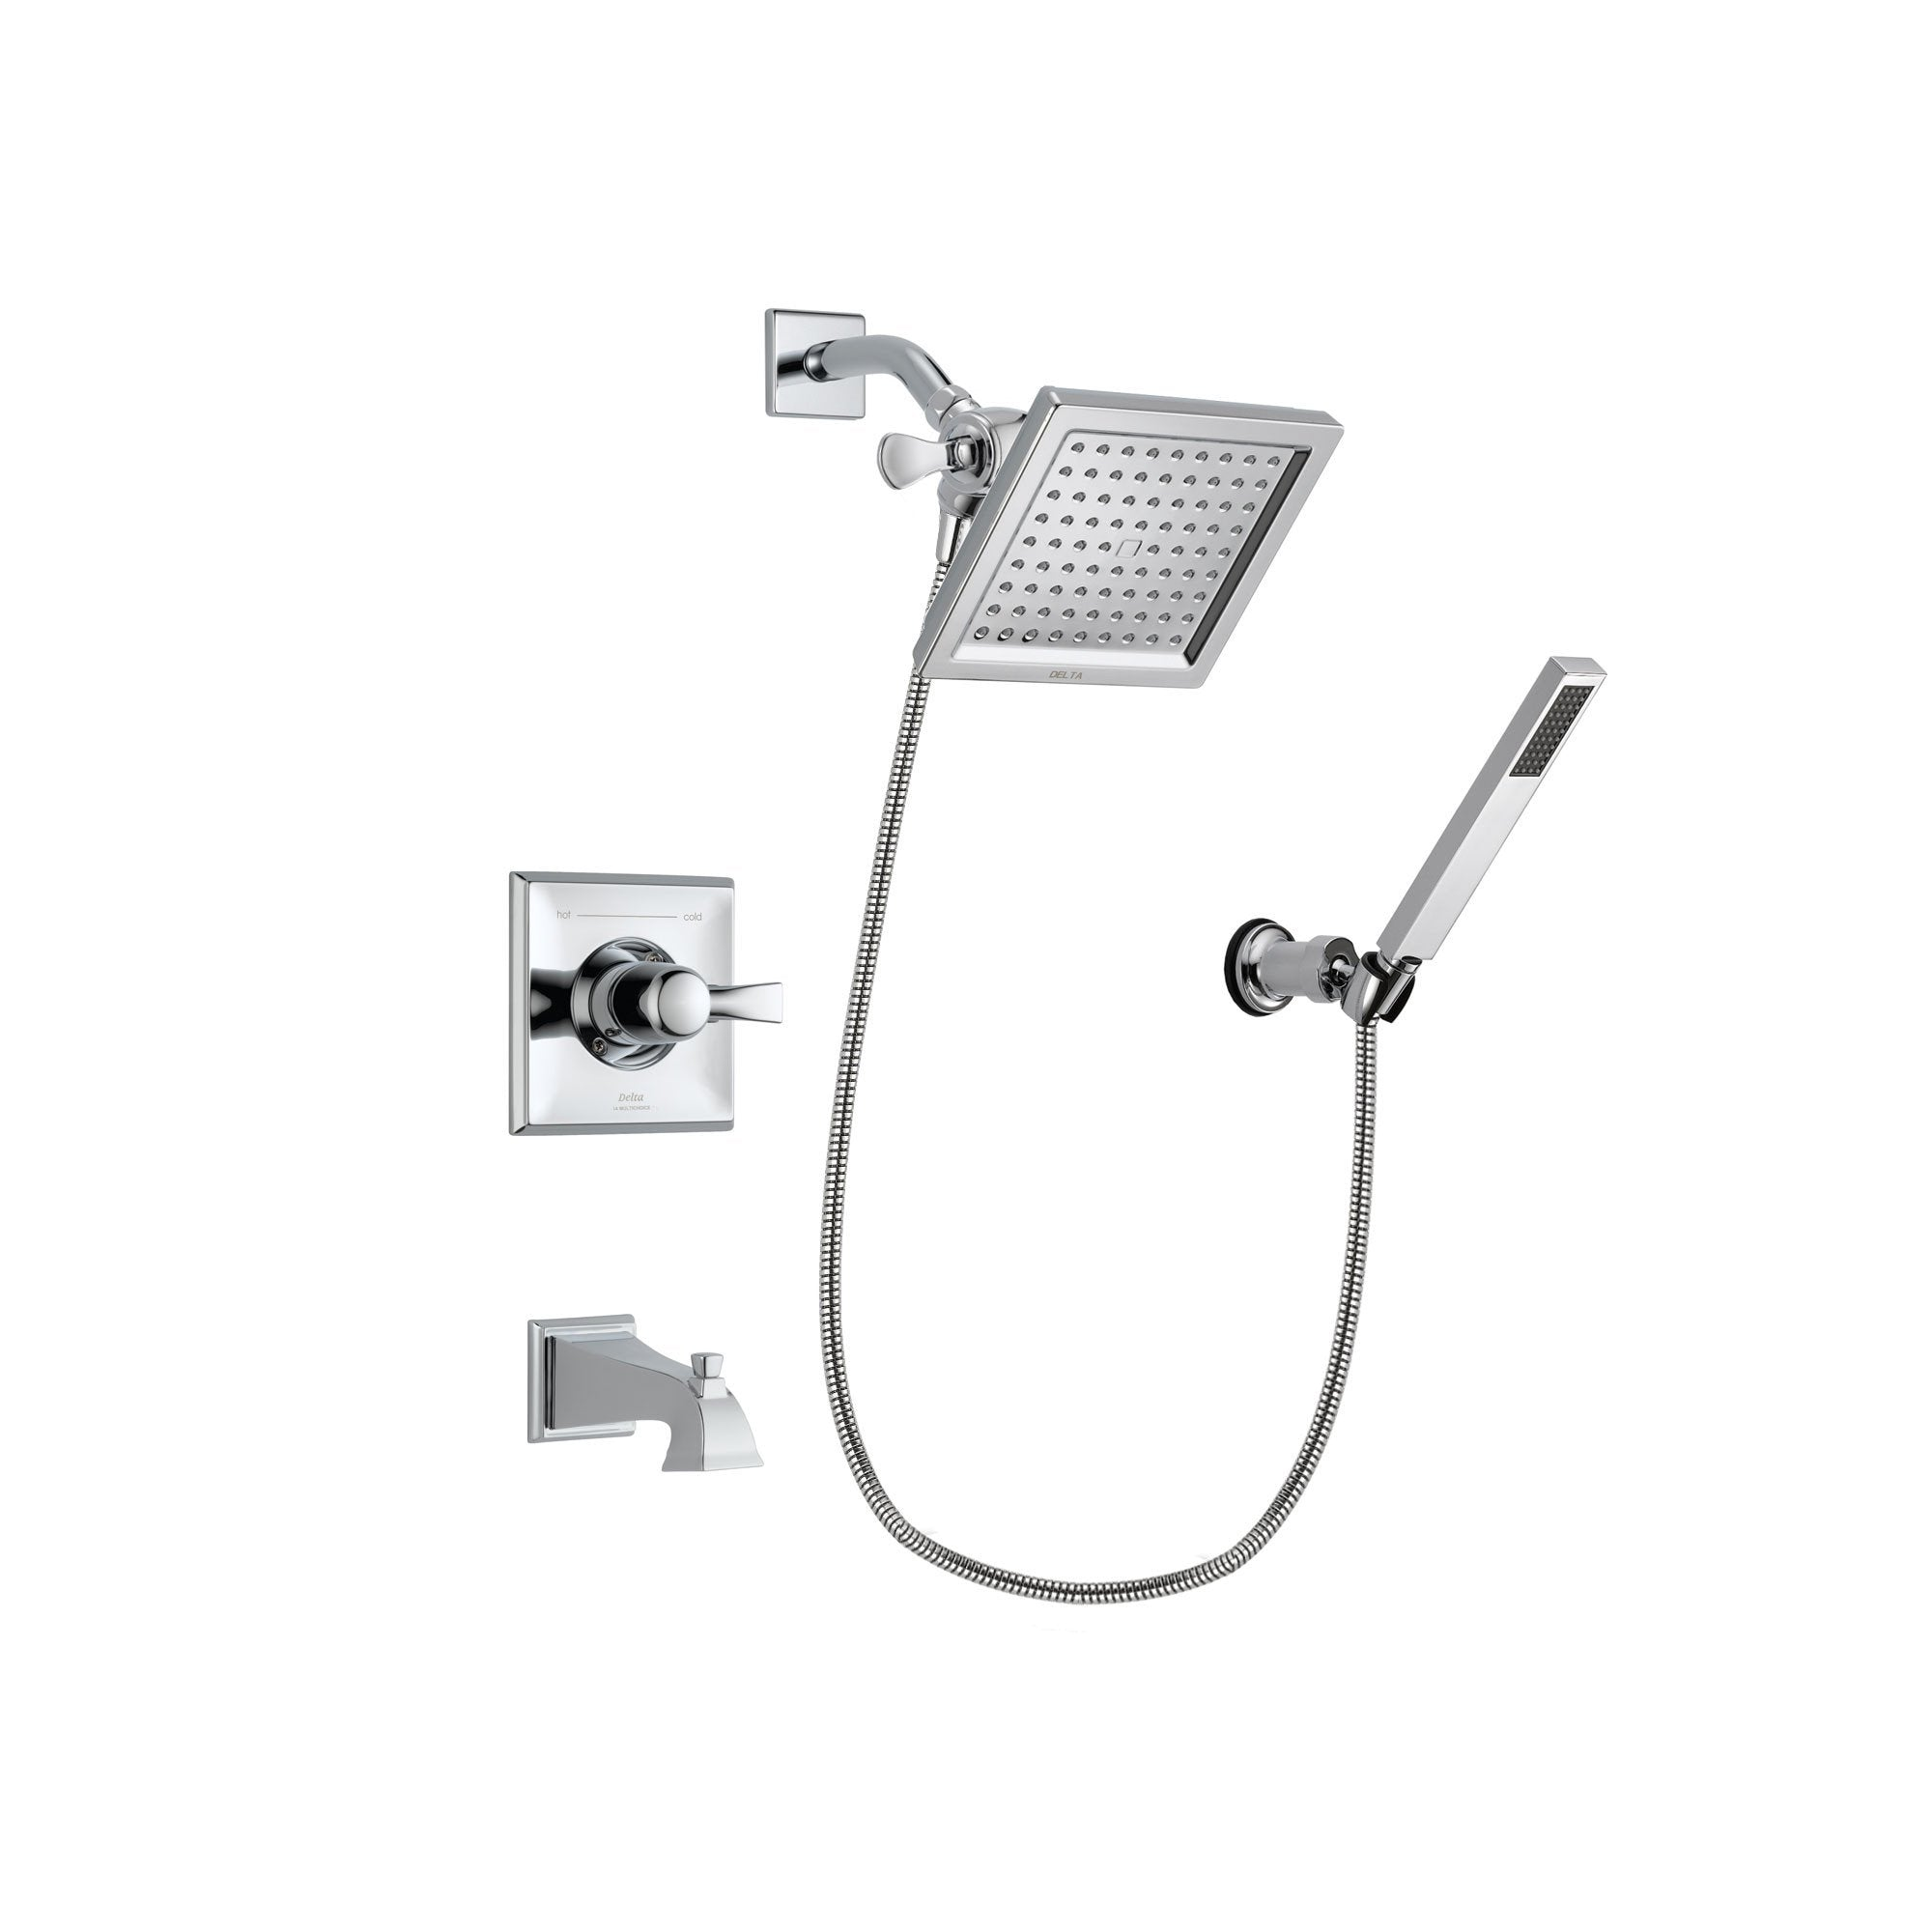 Delta Dryden Chrome Tub and Shower Faucet System Package w/ Hand Shower DSP0119V